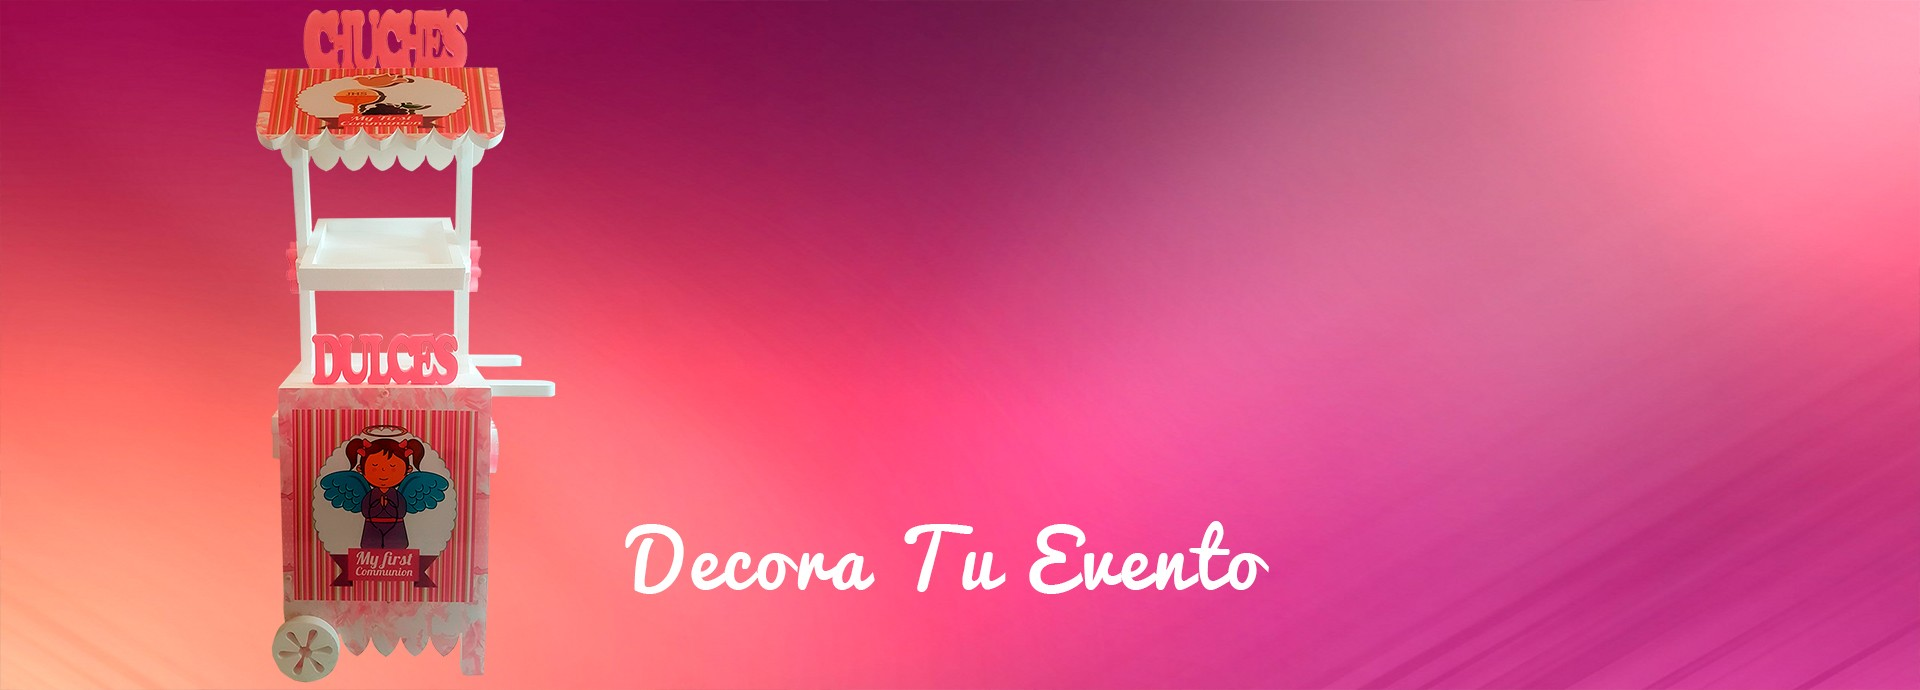 decora-tu-evento